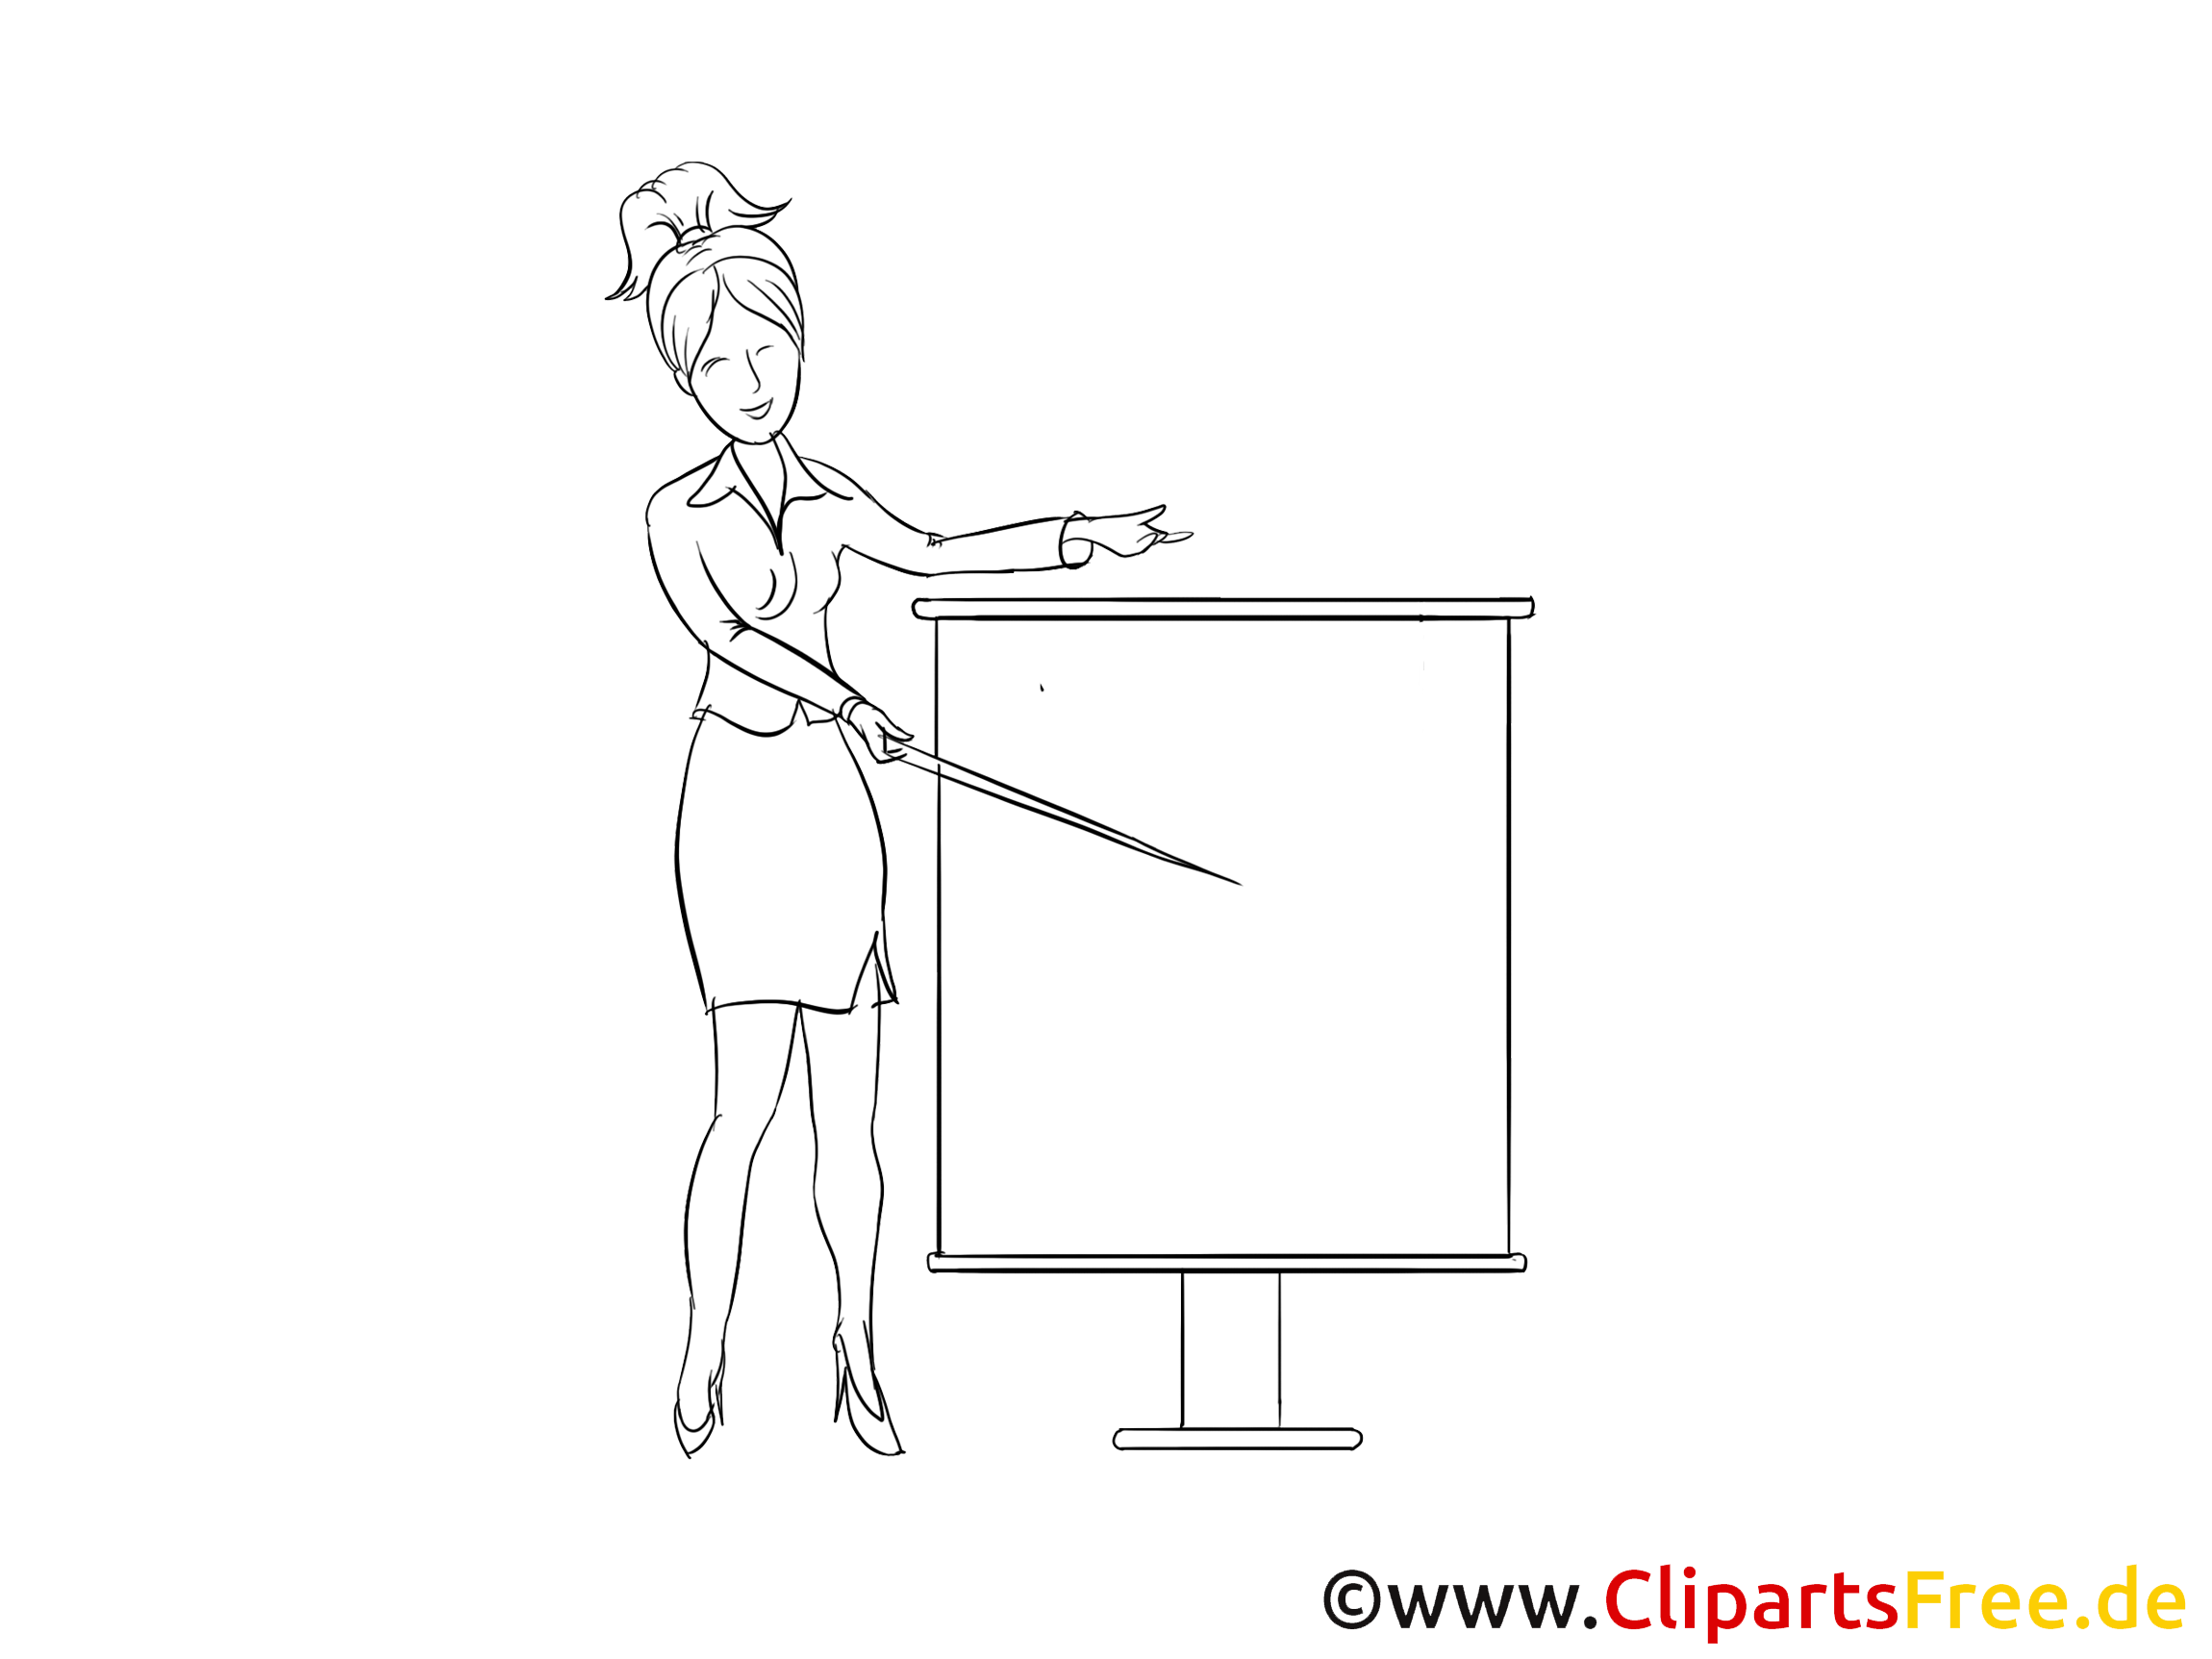 Teacher Clipart, Image, Cartoon